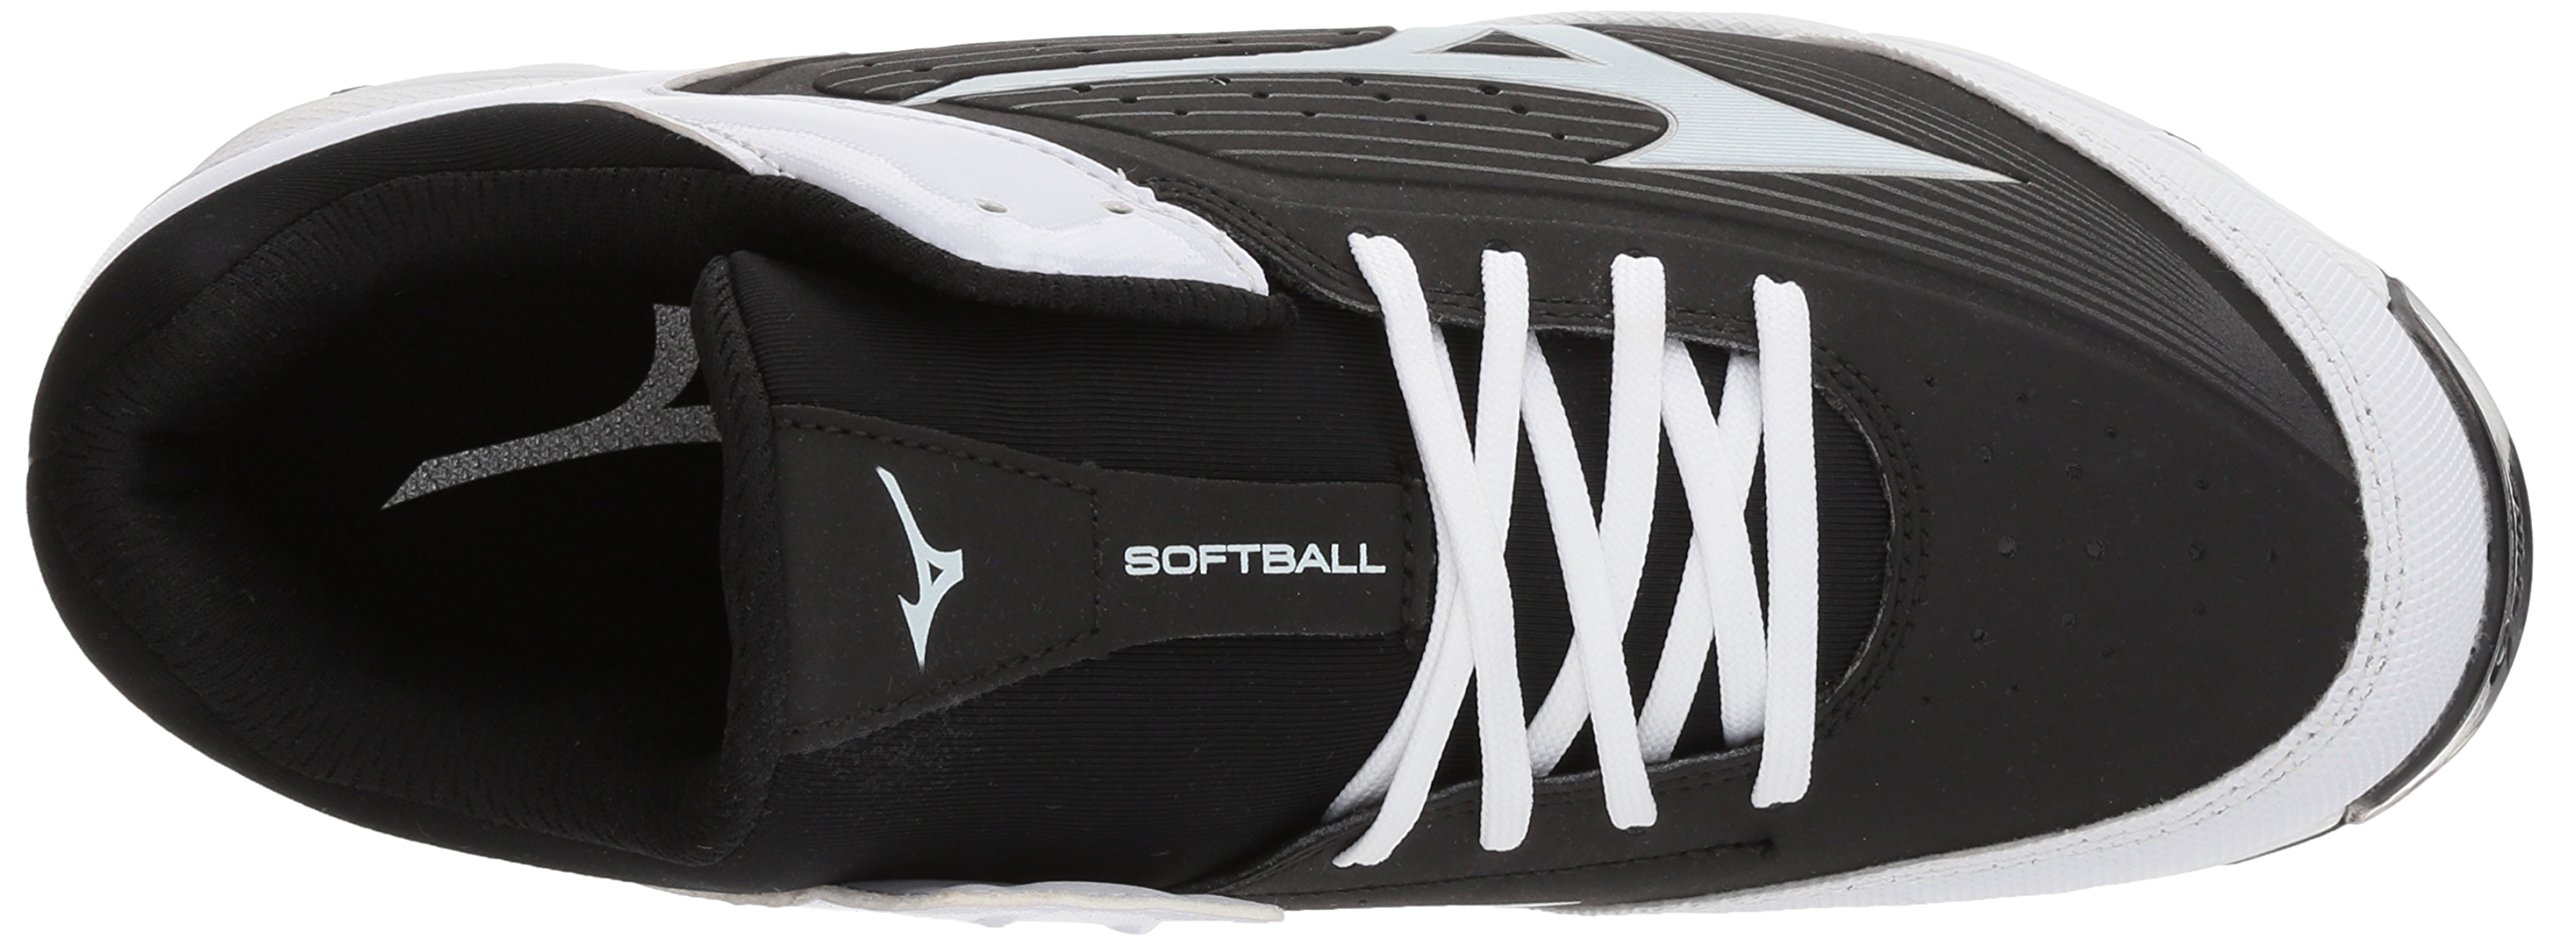 4a4a3cebe02 Mizuno Womens Swift 5 Fastpitch Softball Cleat Shoe   Sports   Fitness  Features   Sports   Outdoors - tibs